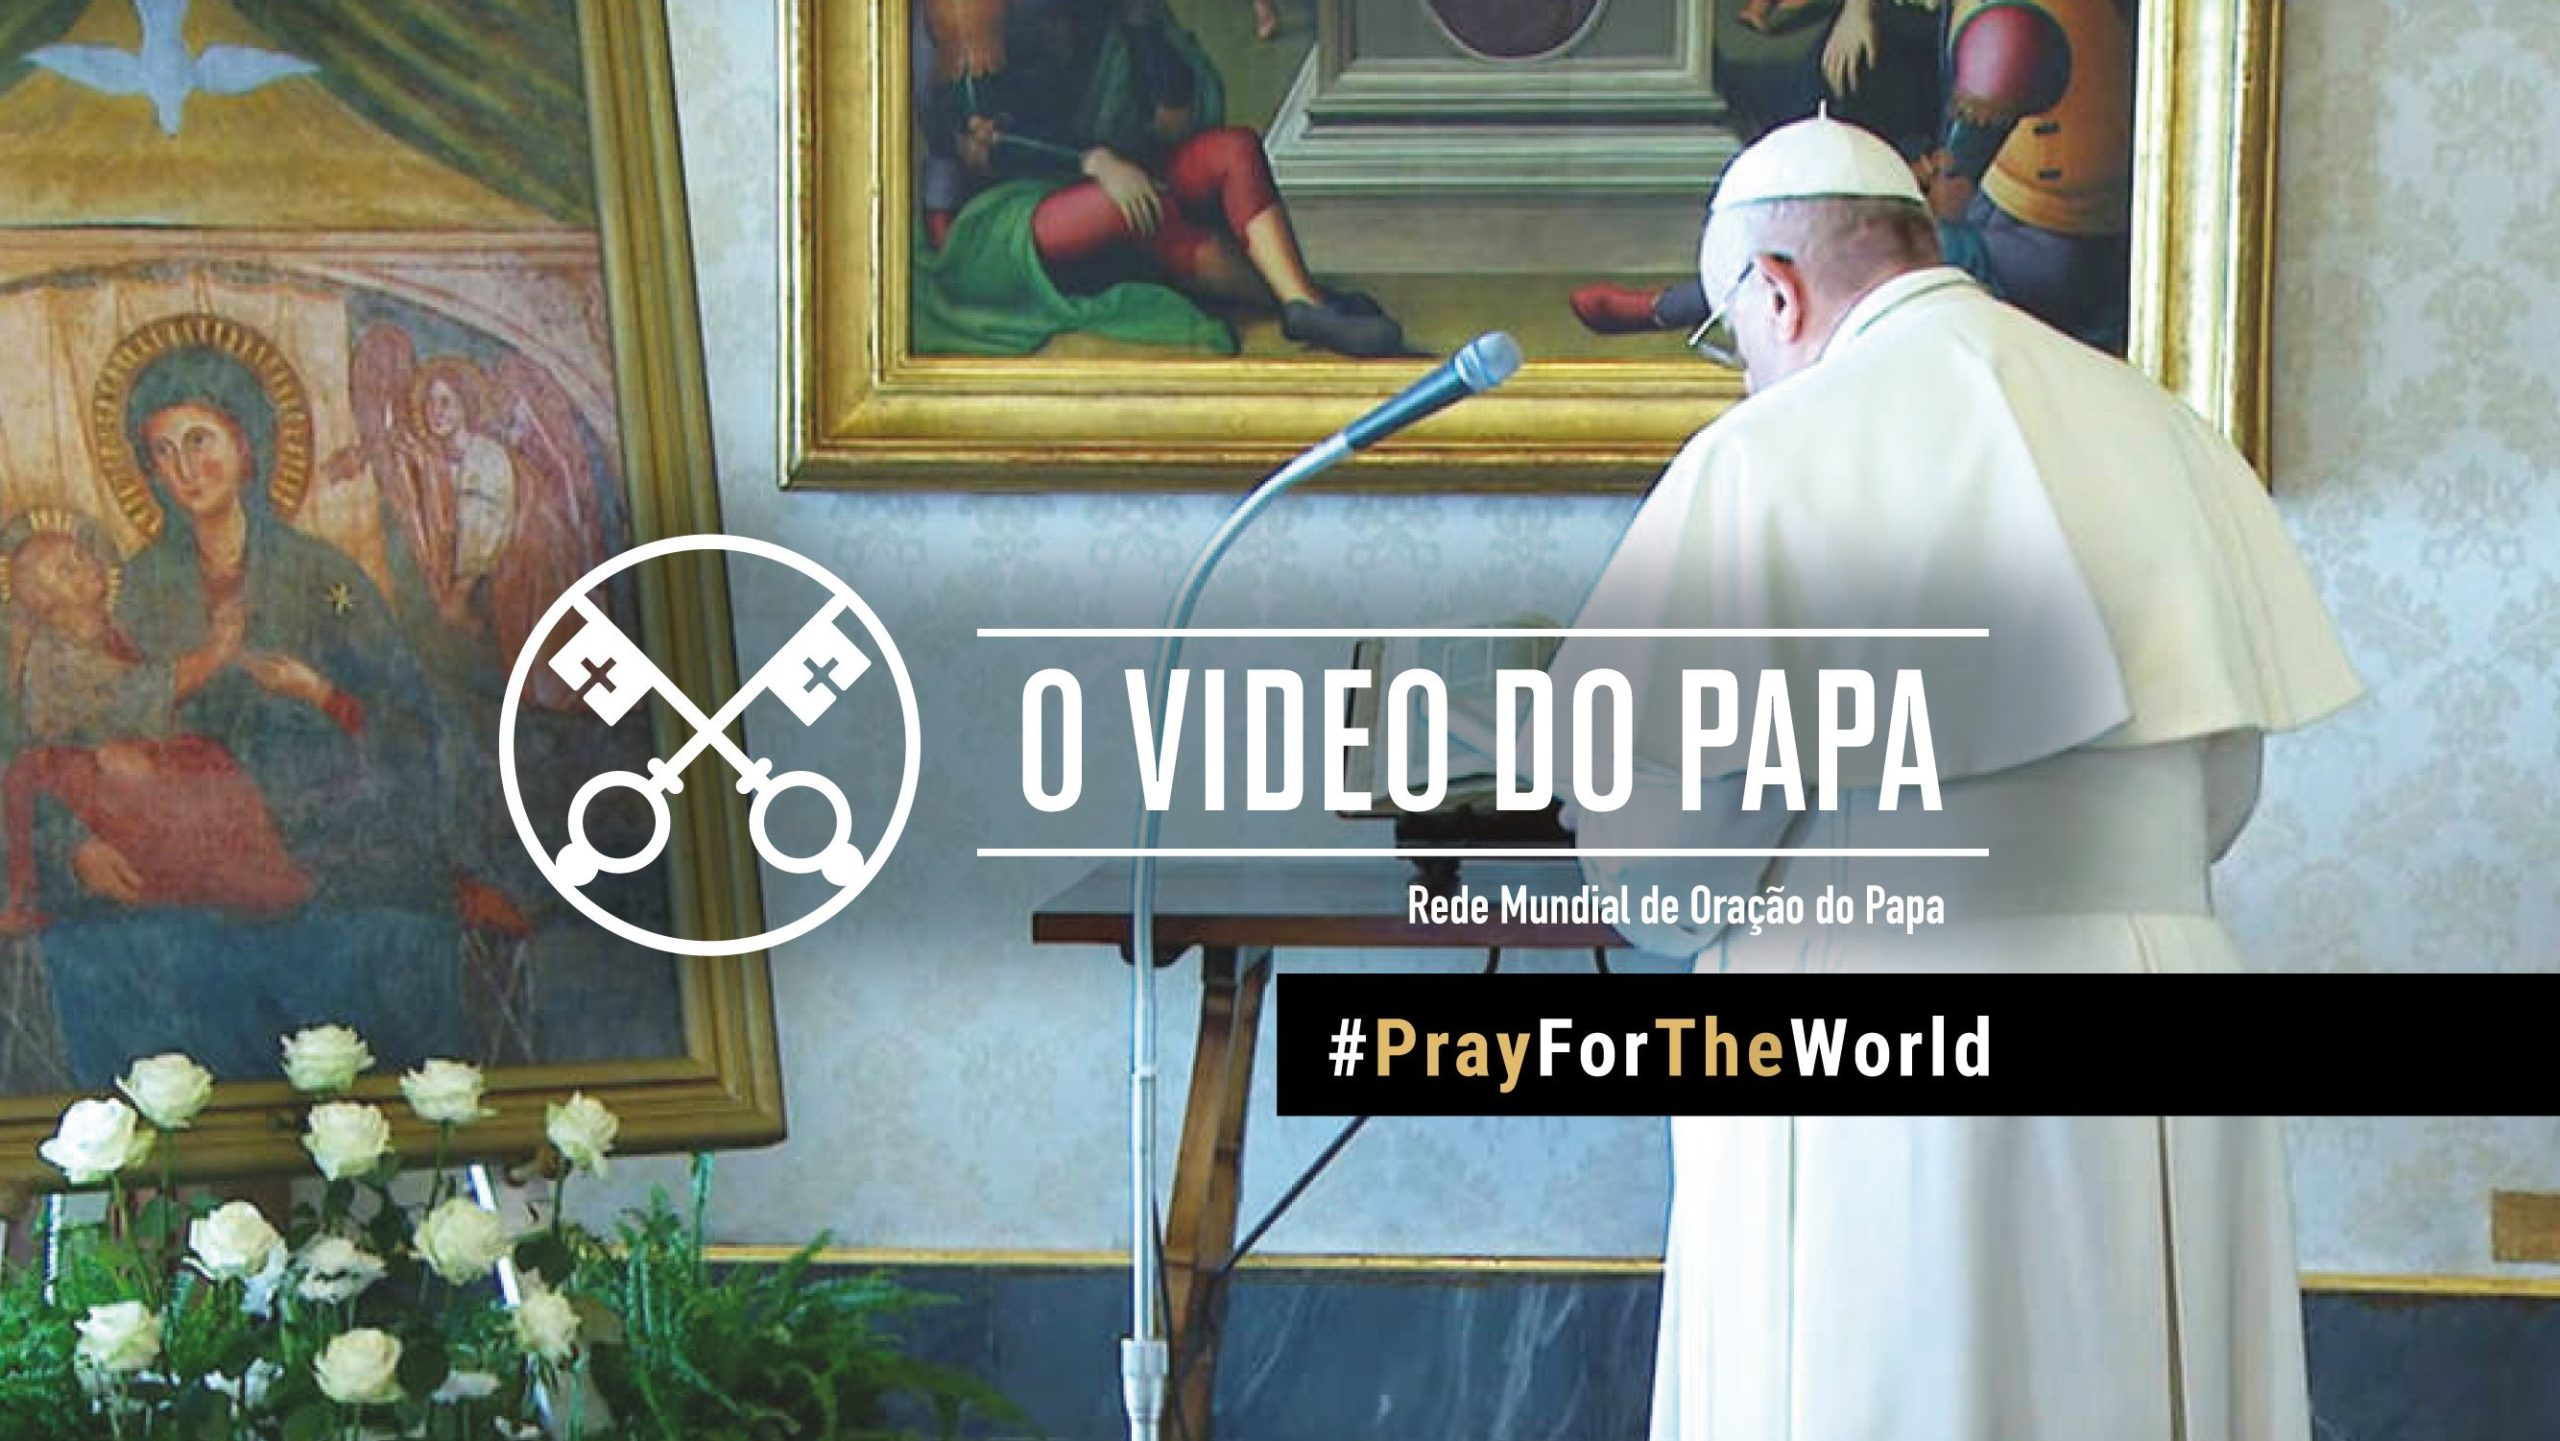 Official-Image-TPV-PFTW-2020-PT-O-Video-do-Papa-PrayForTheWorld-scaled